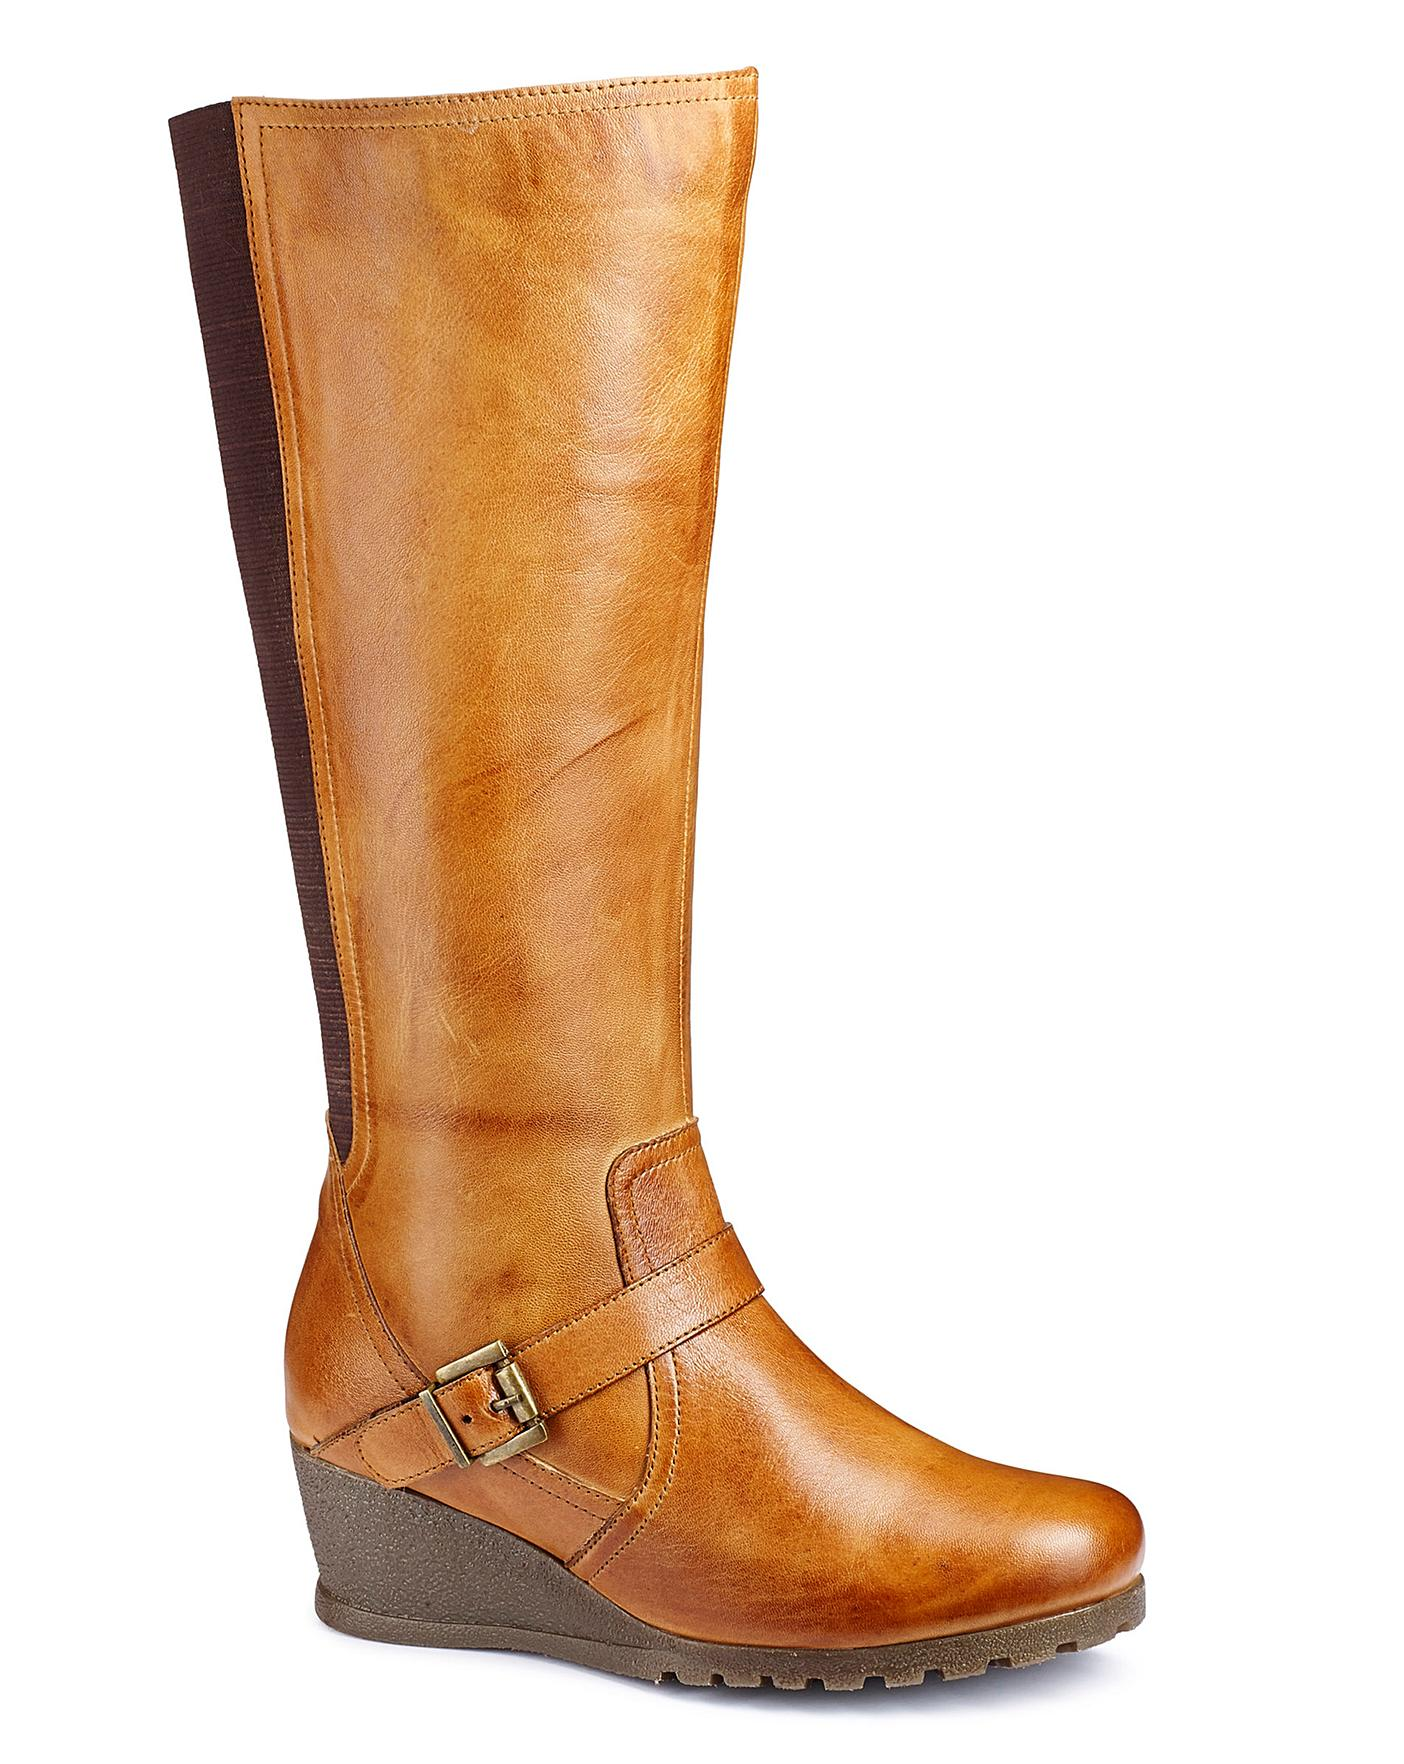 Lotus Boots E Fit Standard Calf | Simply Be